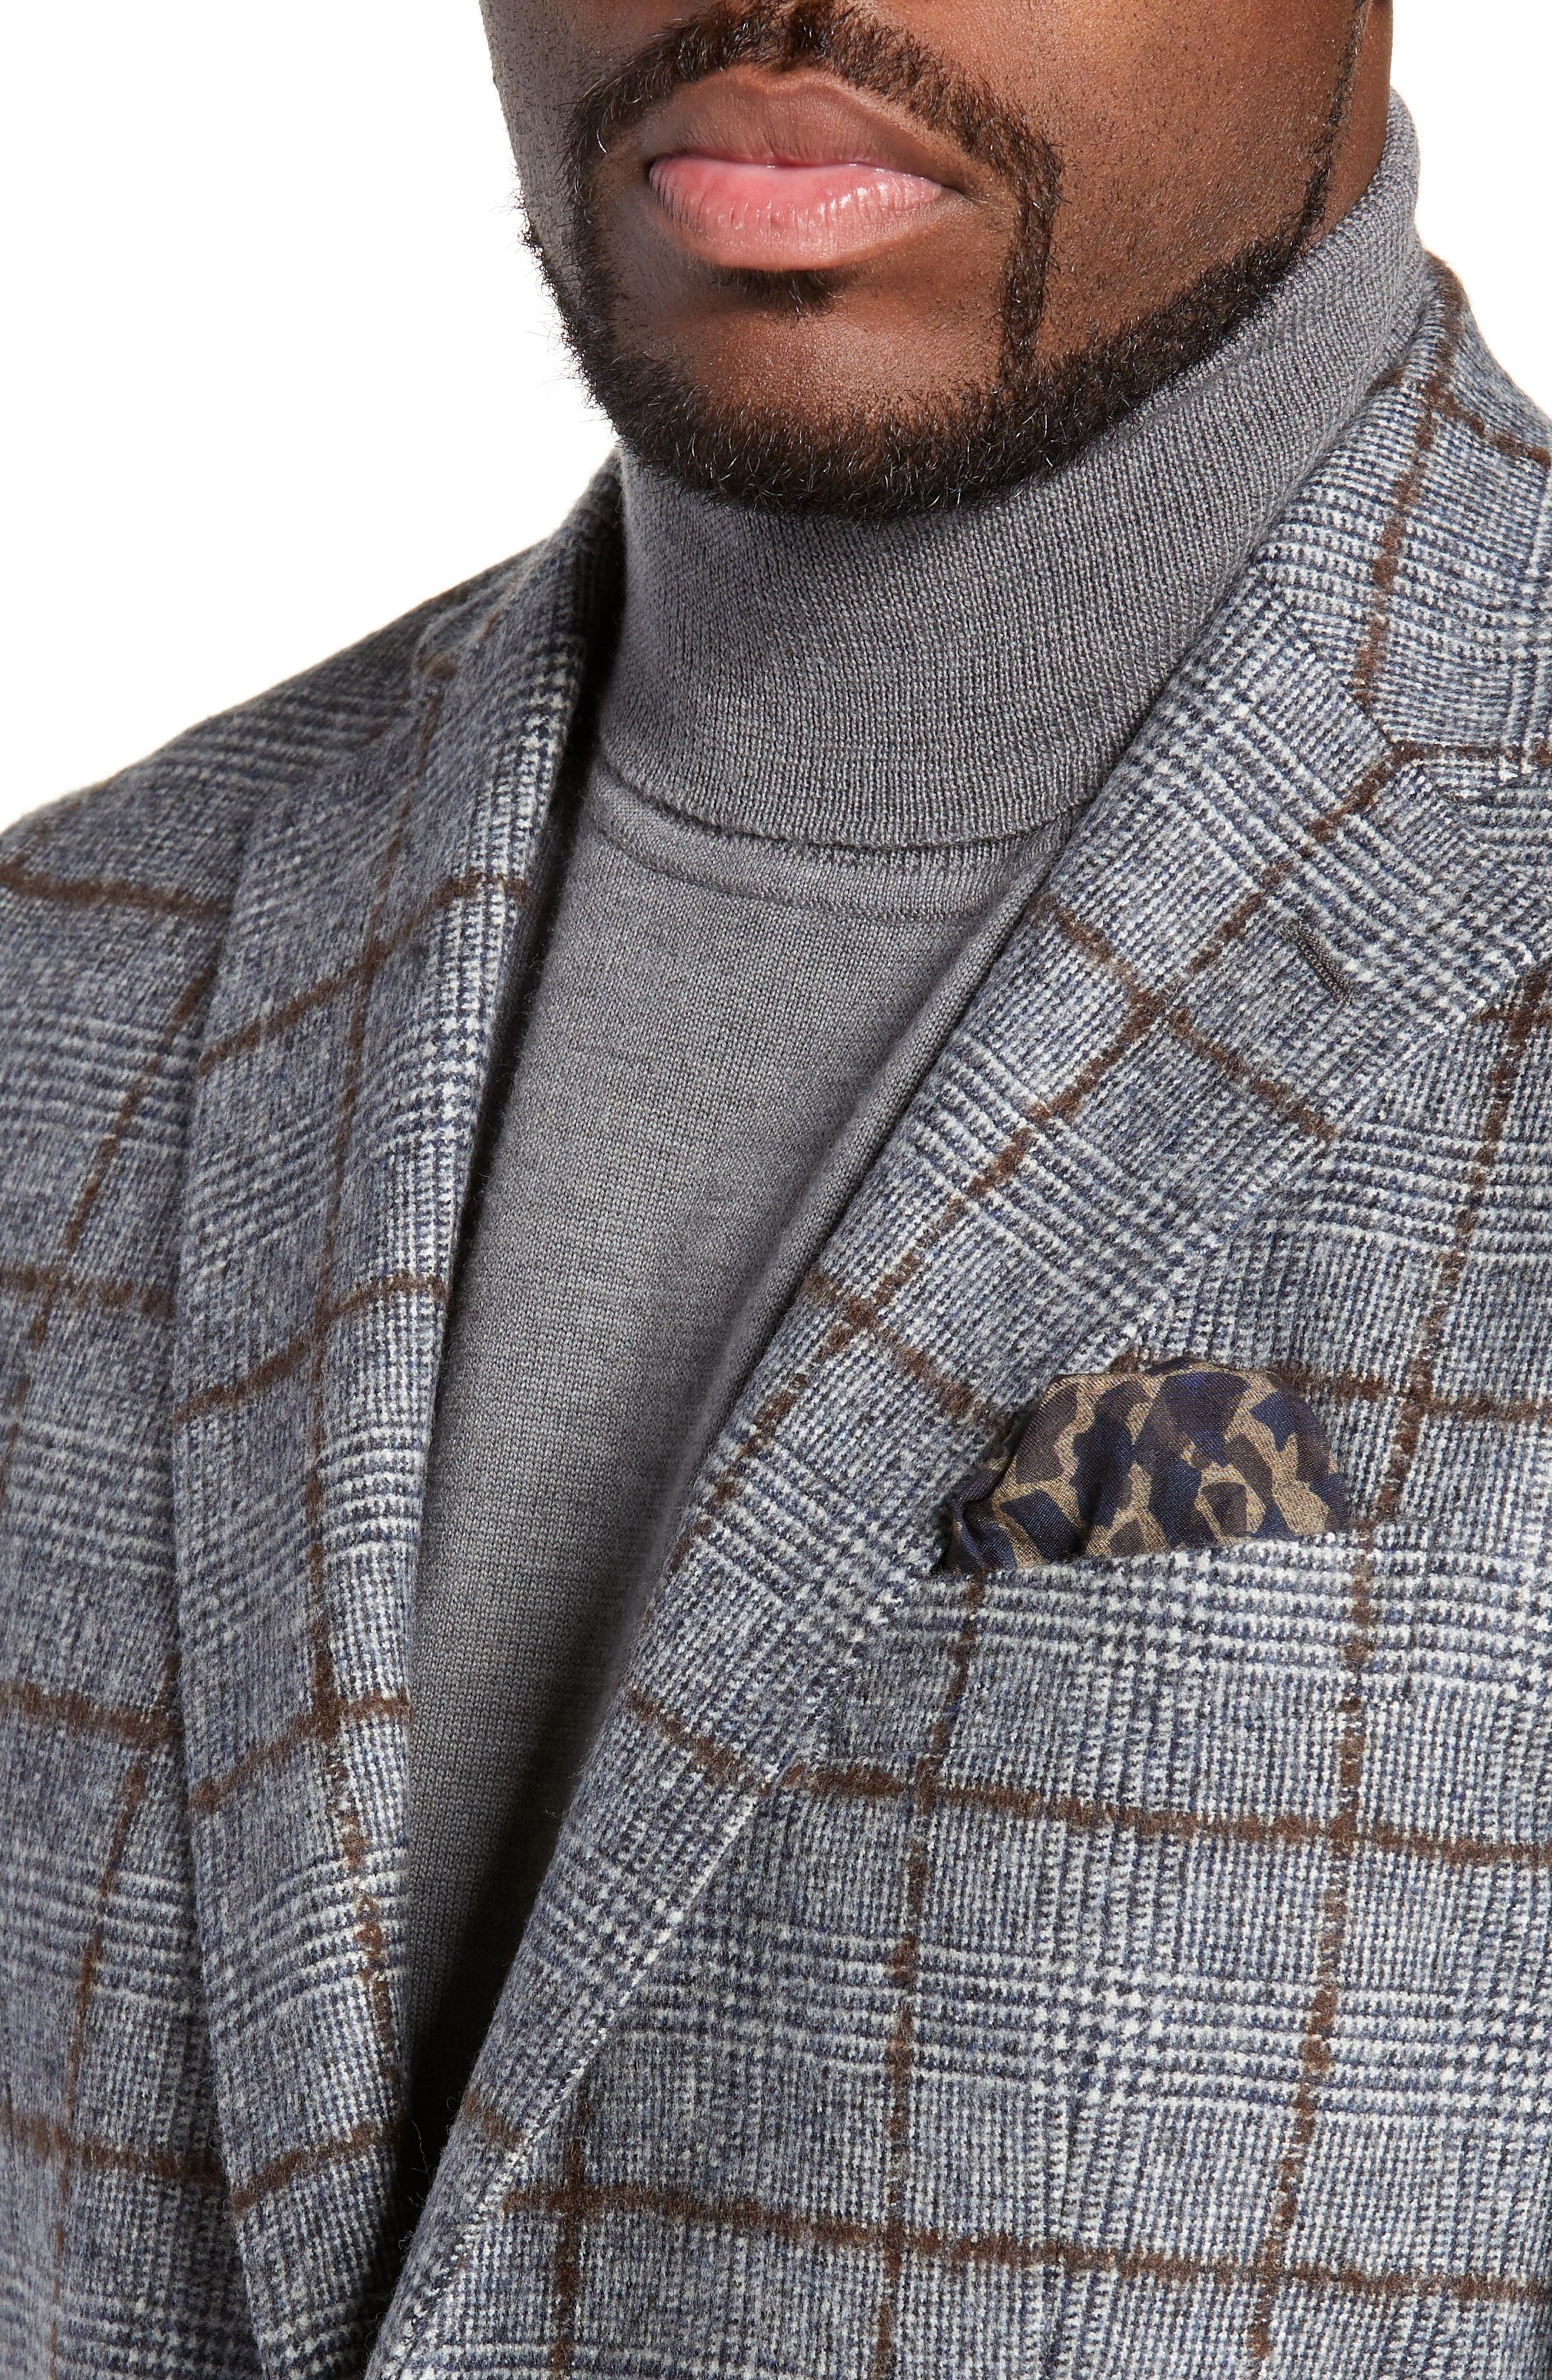 Trim Fit Plaid Wool Sport Coat,                             Alternate thumbnail 4, color,                             NAVY